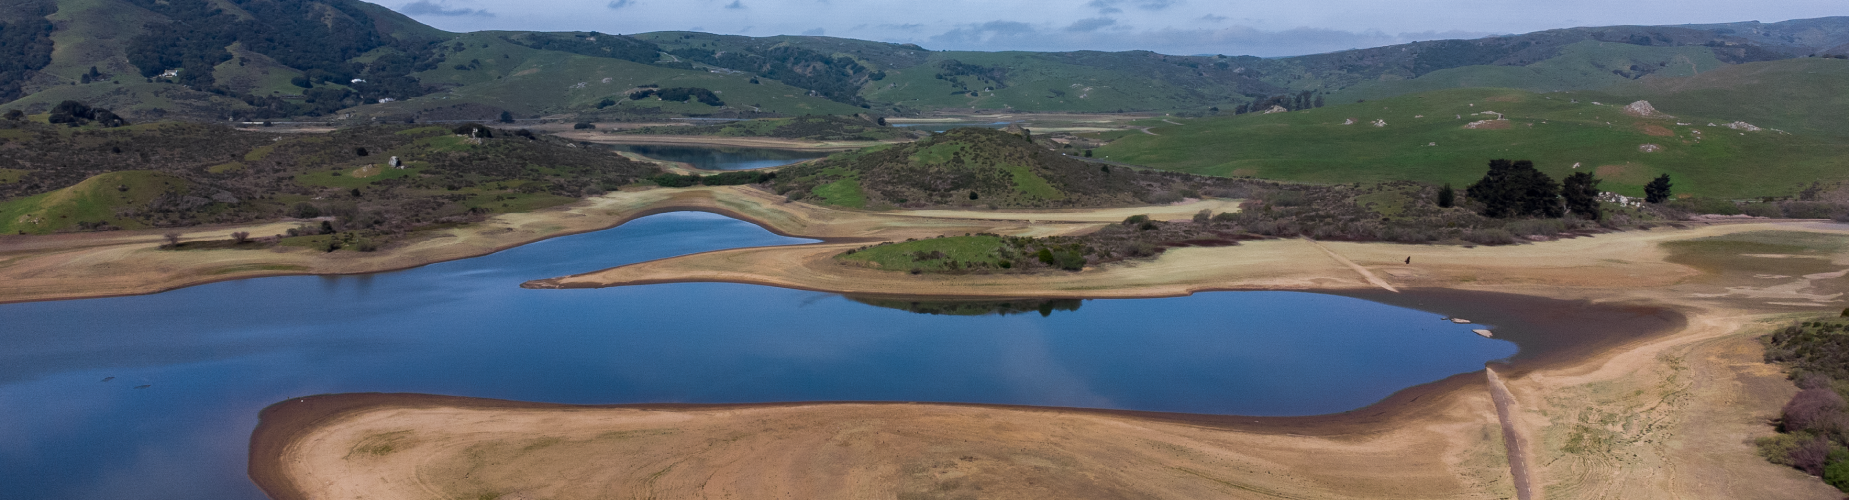 Nicasio Reservoir Low Water Level